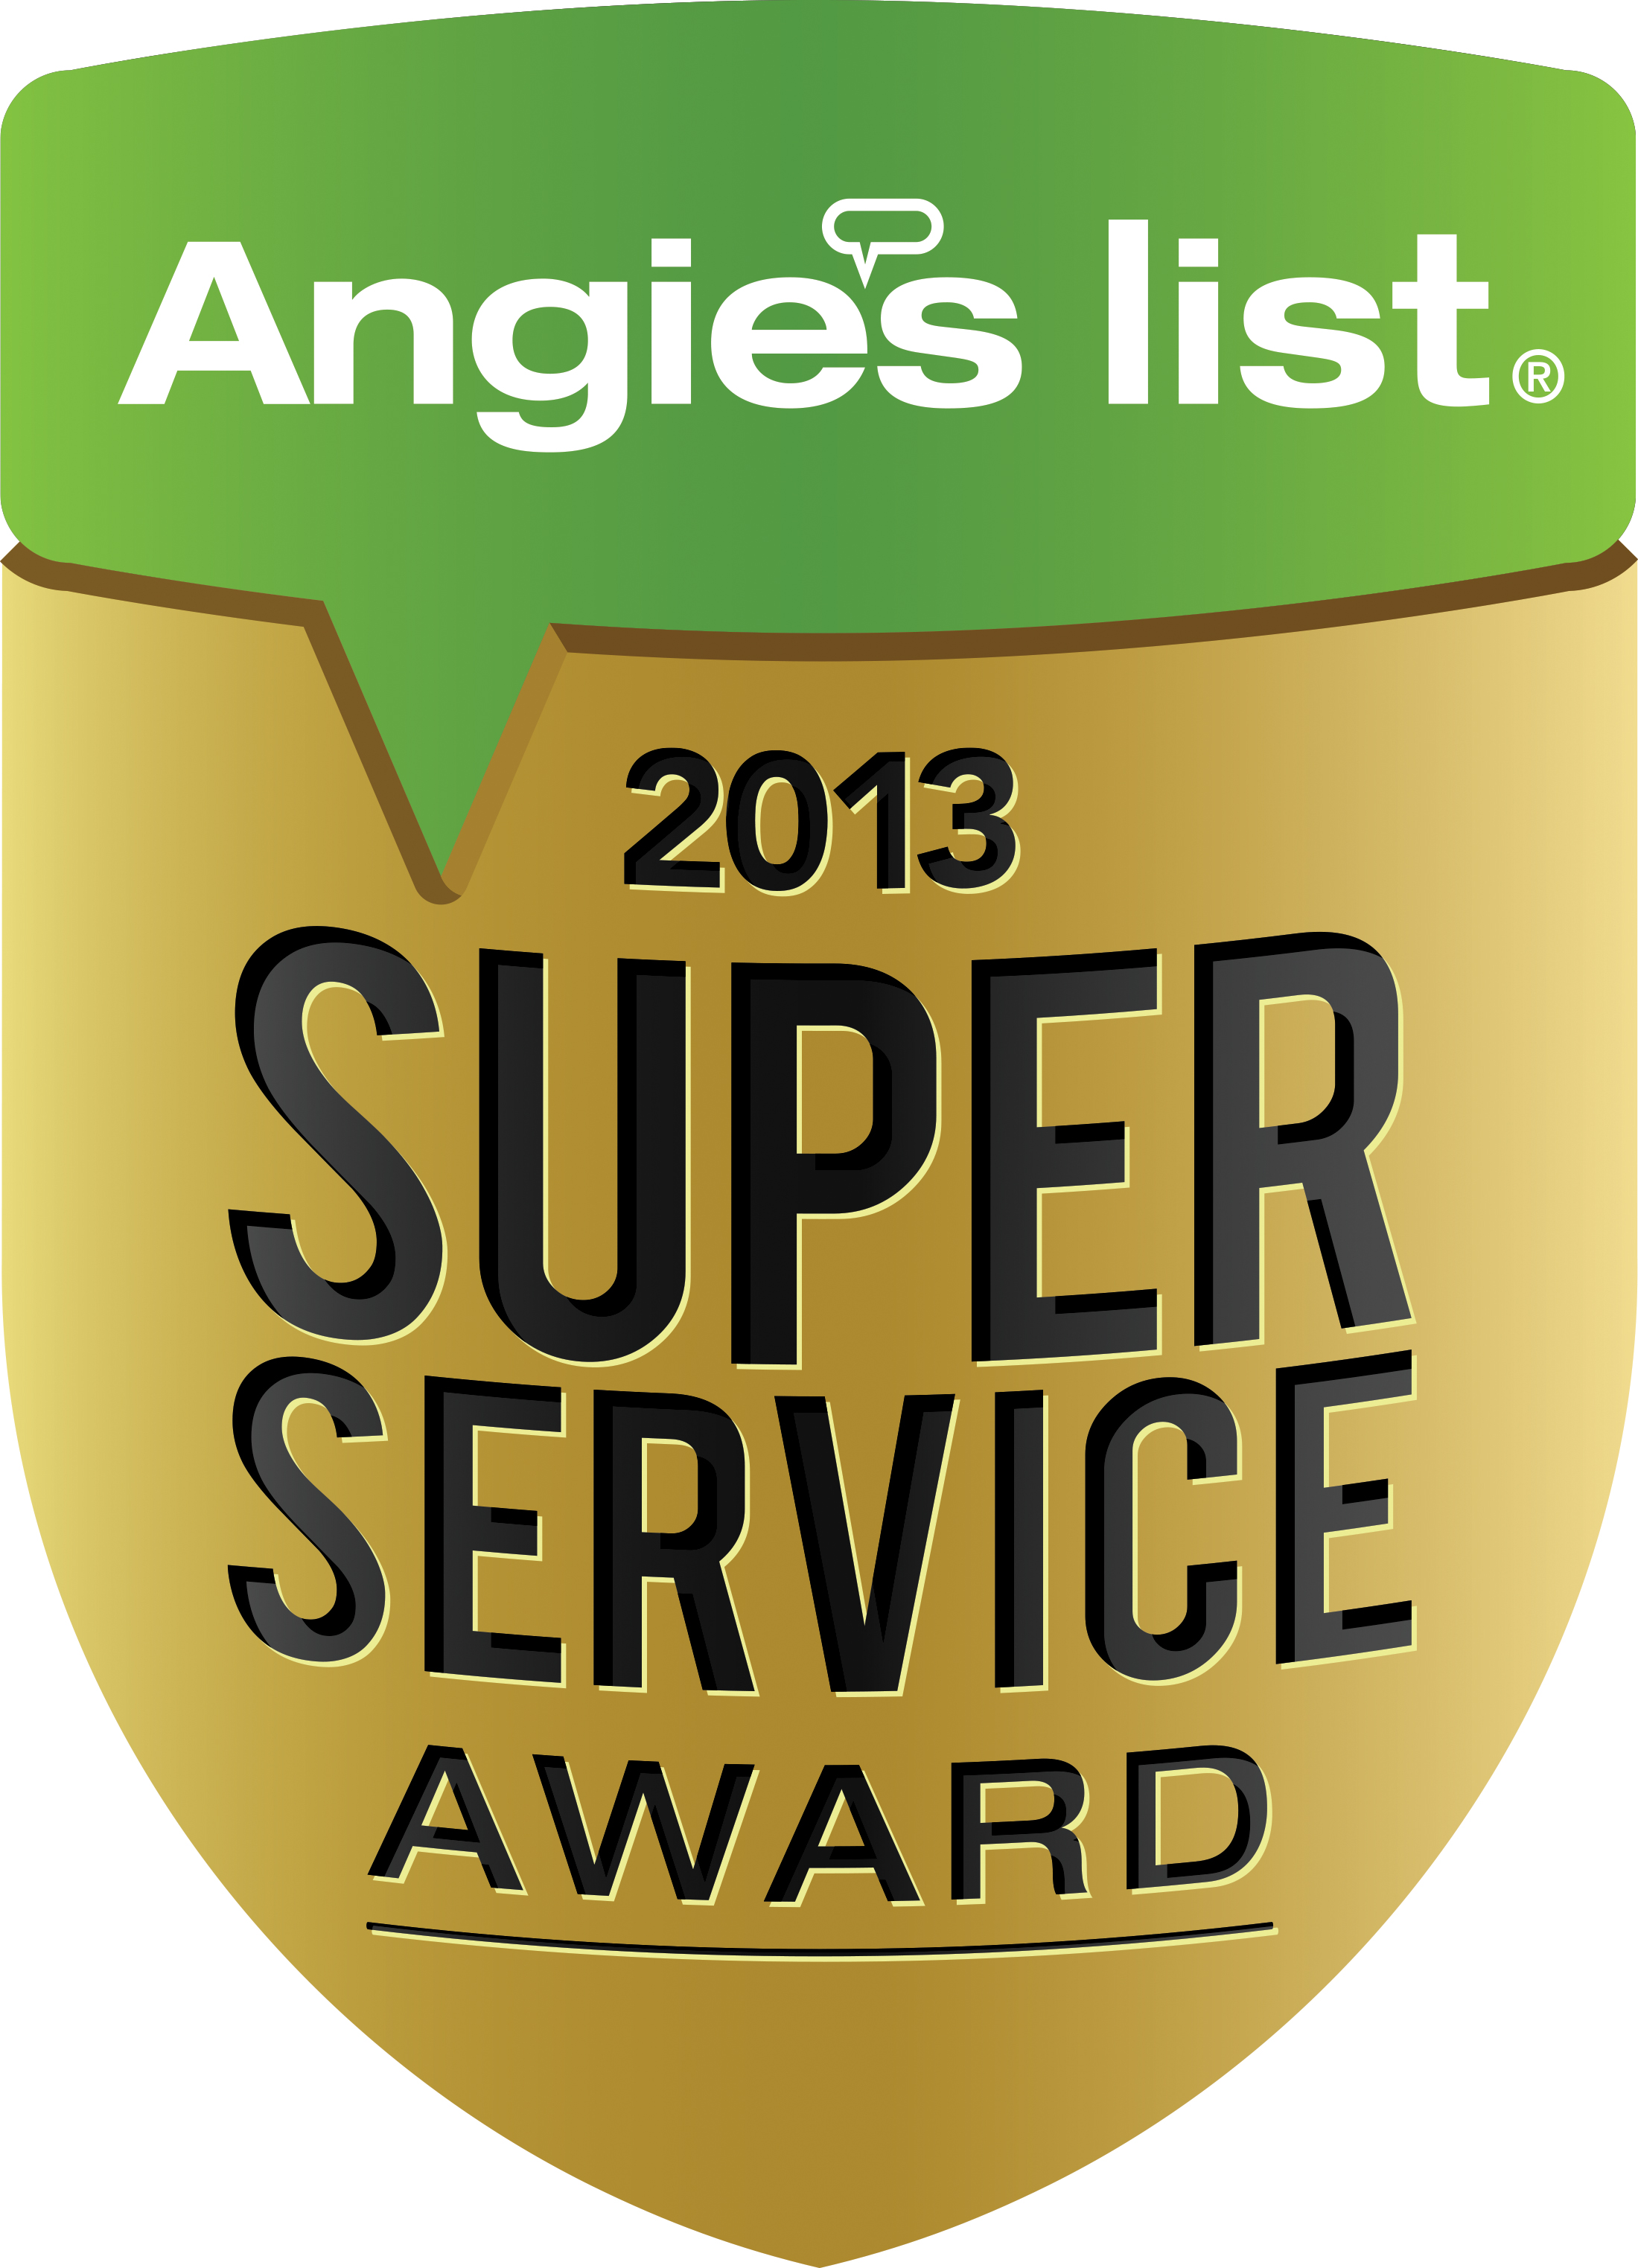 Angie's list 2013 super award, Car-Doc Automotive, St Louis, MO, 63146